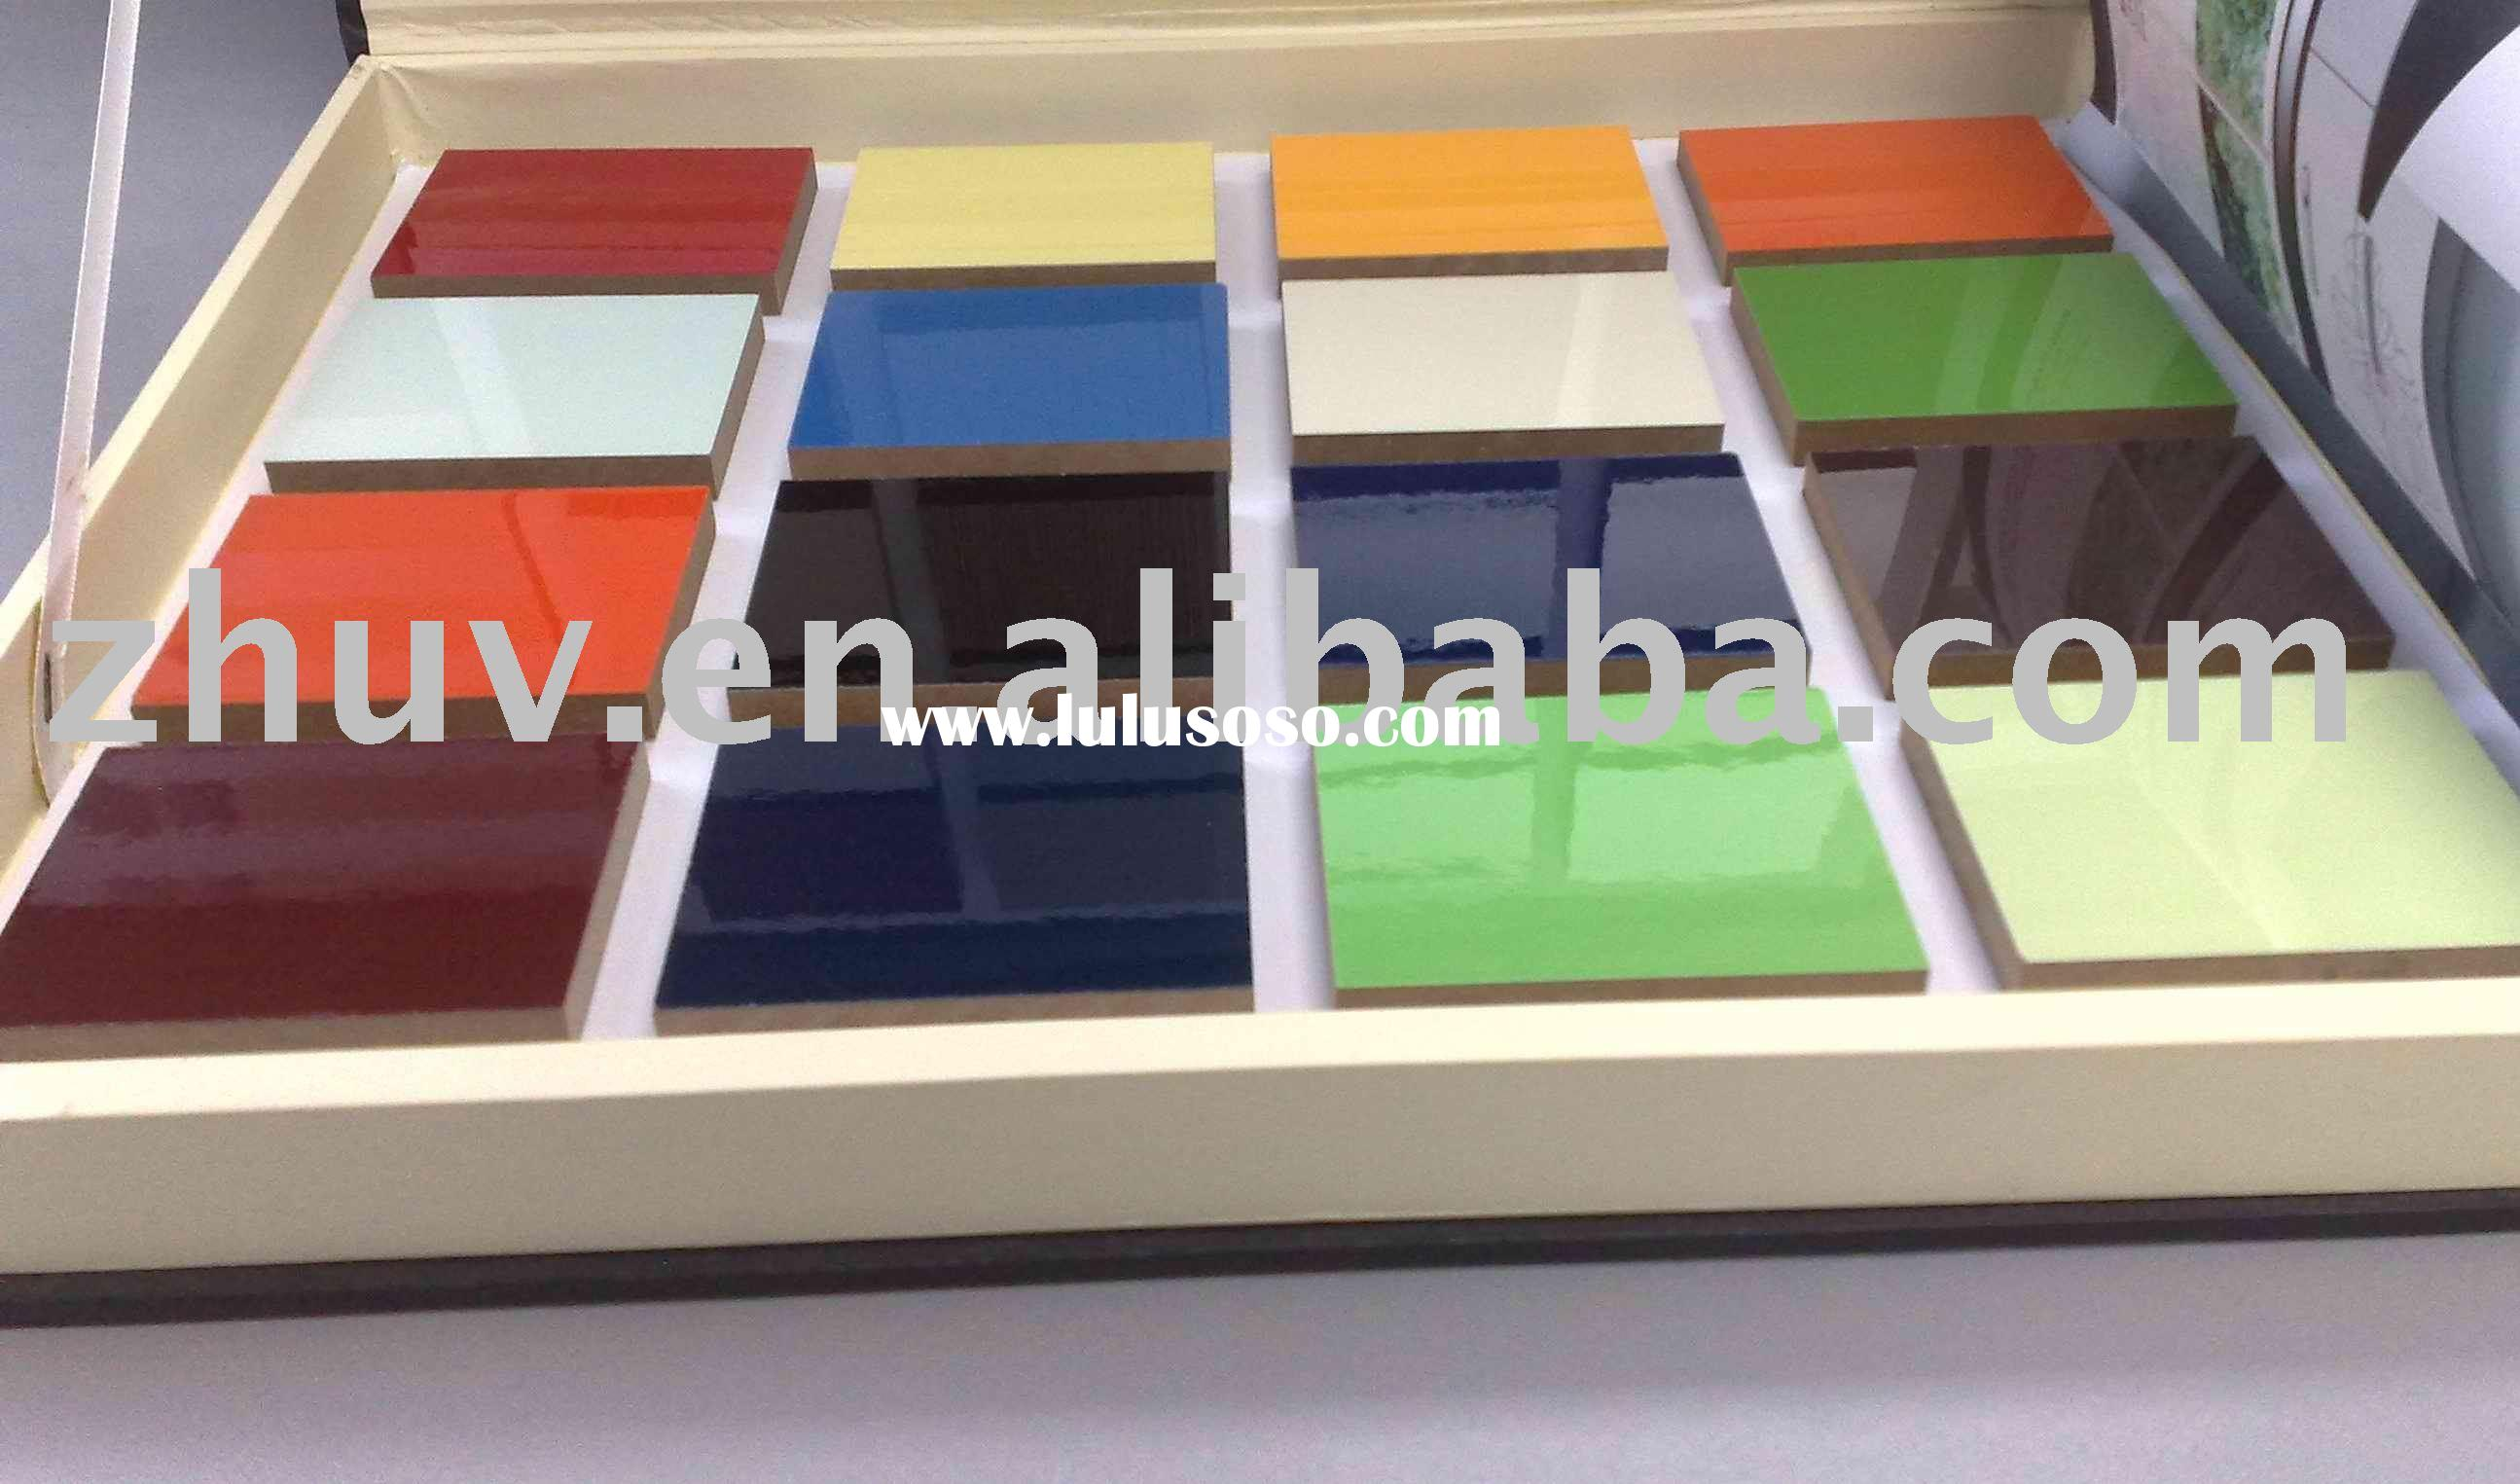 Kitchen Cabinet Doors Pvc Laminated Mdf Board mdf kitchen cabinet doors UV High Gloss MDF Panel MDF Board Ideal for Kitchen Cabinet Doors